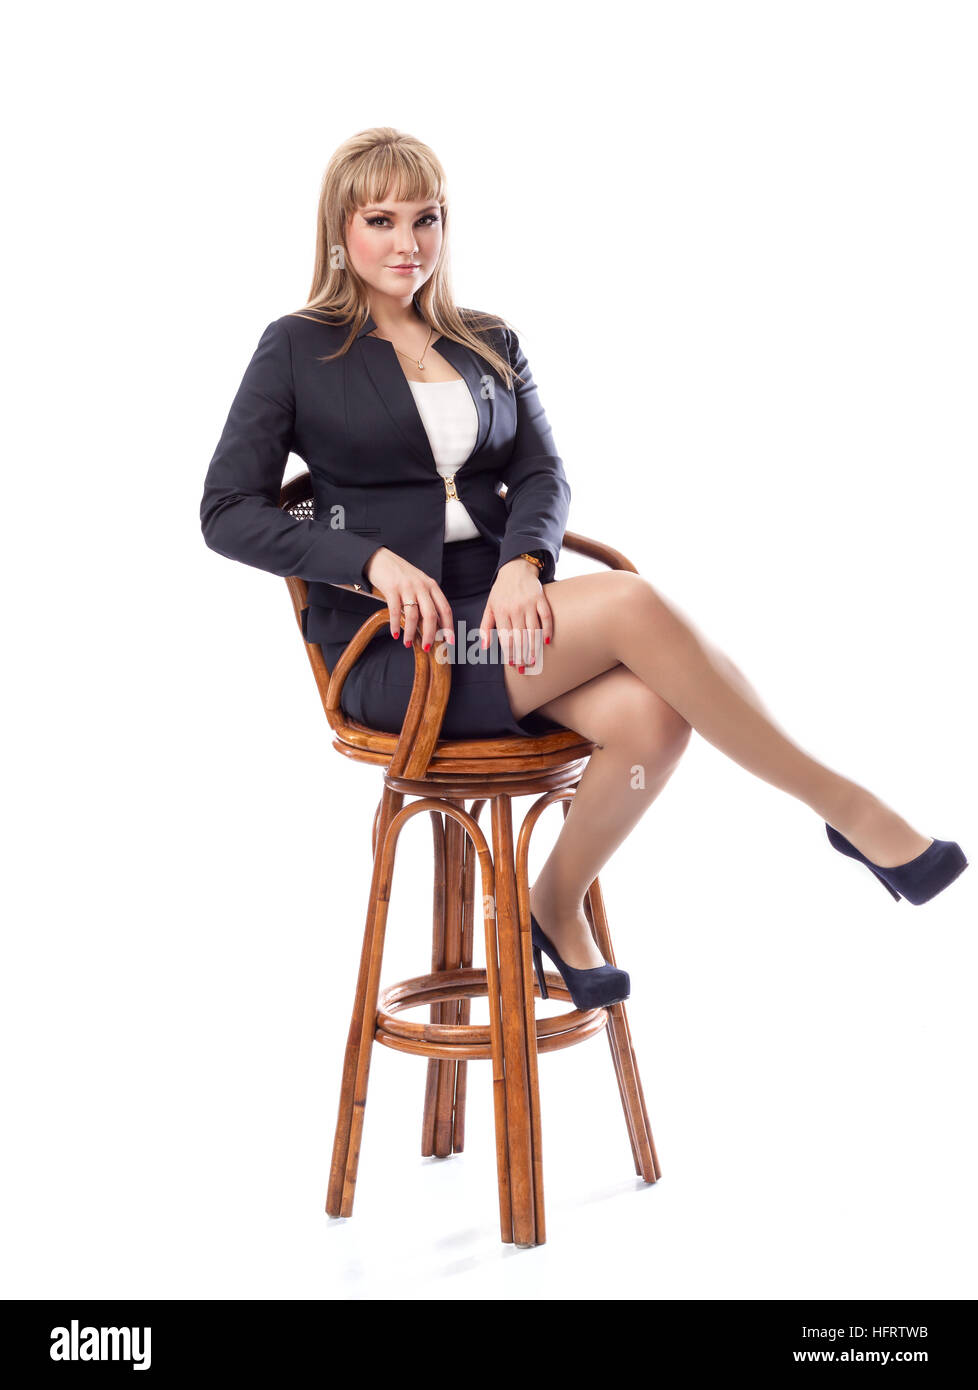 Young beautiful business woman in a business suit, sitting on a bar stool. White isolated background. - Stock Image